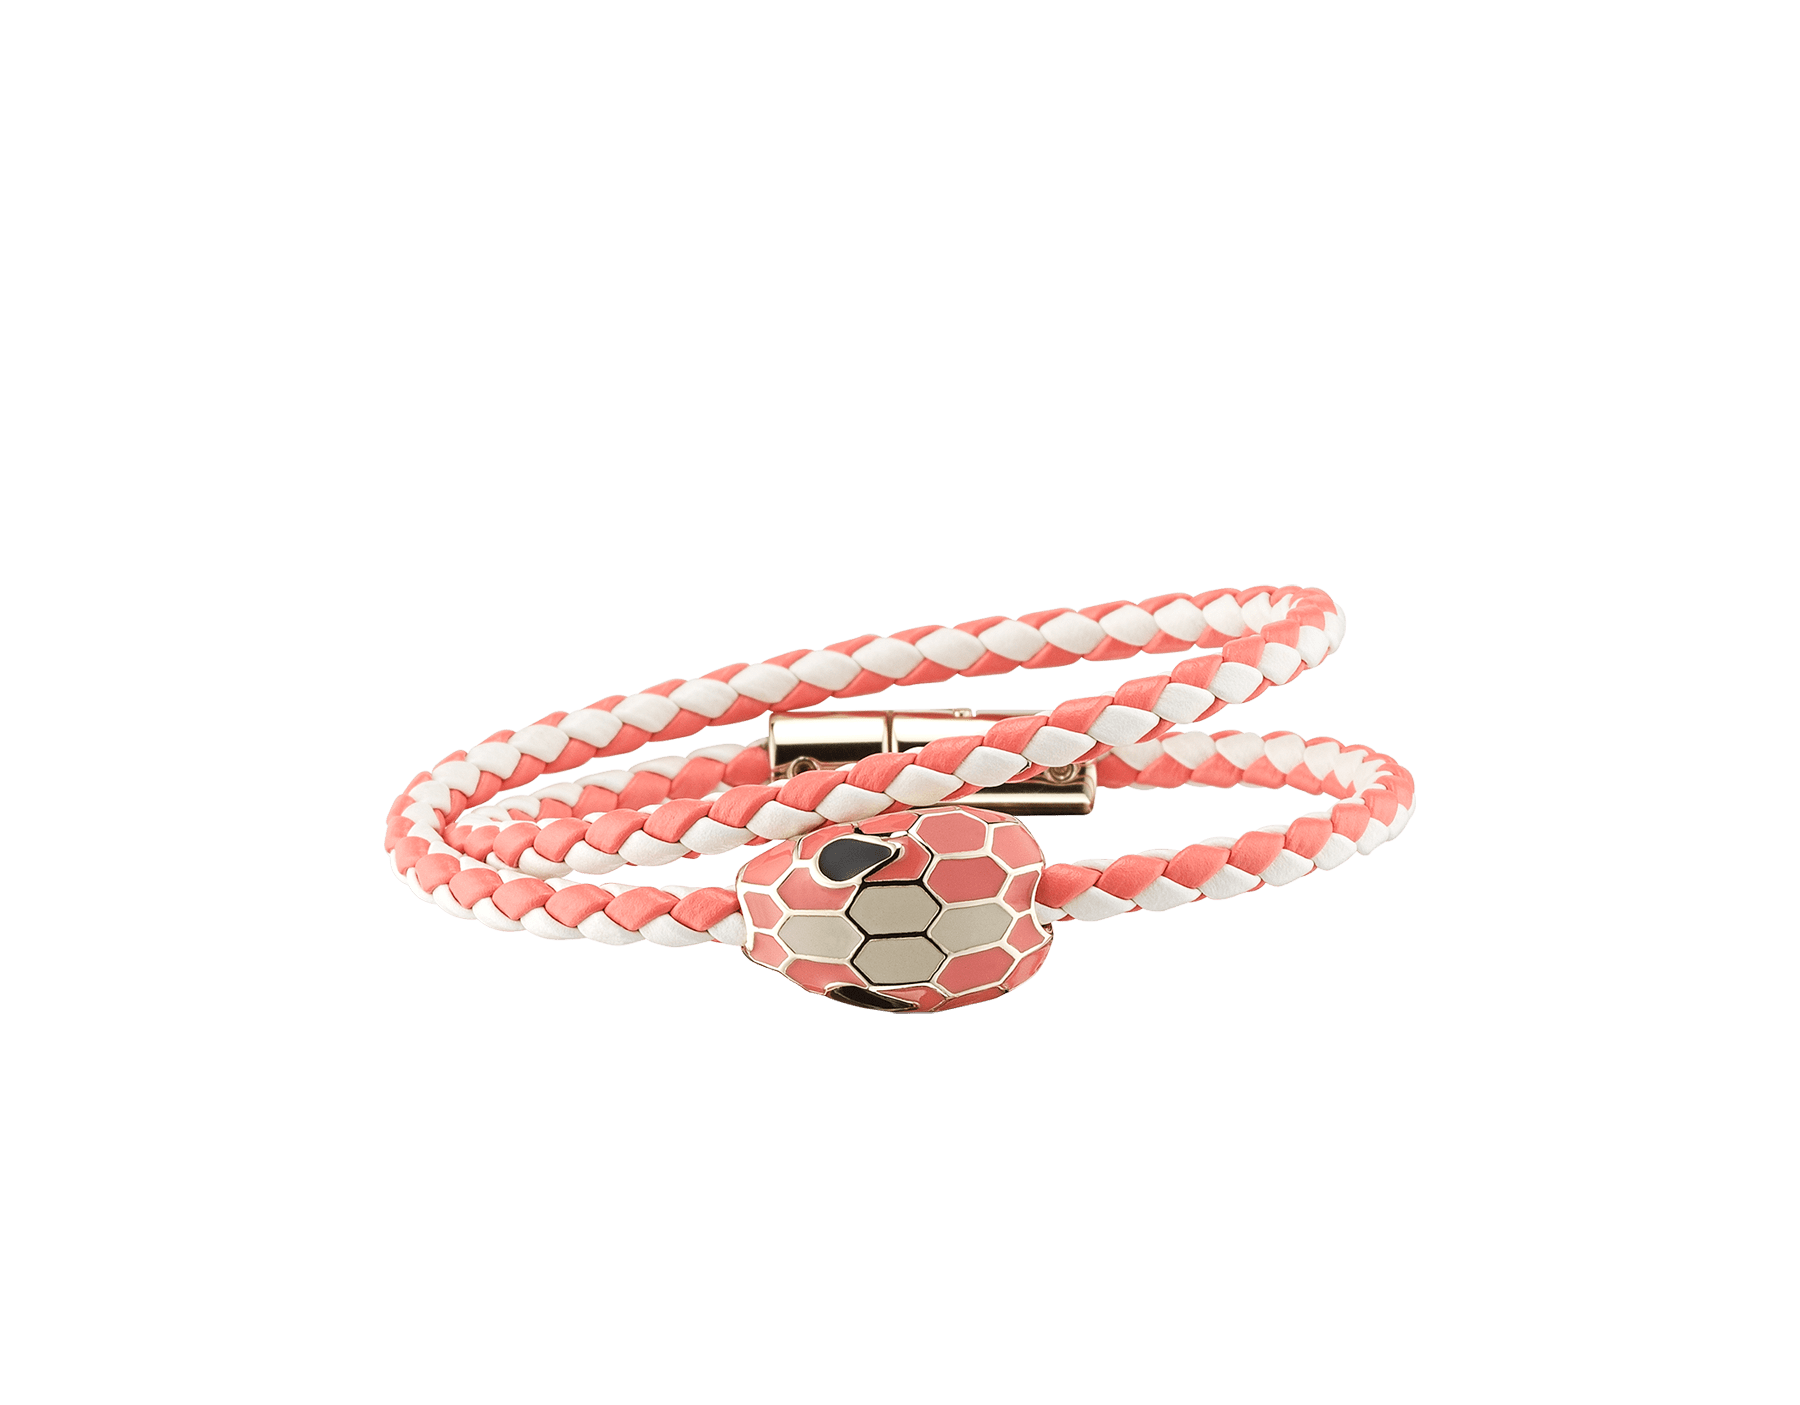 Serpenti Forever multi-coiled braid bracelet in white agate and silky coral woven calf leather, with the iconic snakehead décor in silky coral and white agate enamel. 289170 image 1